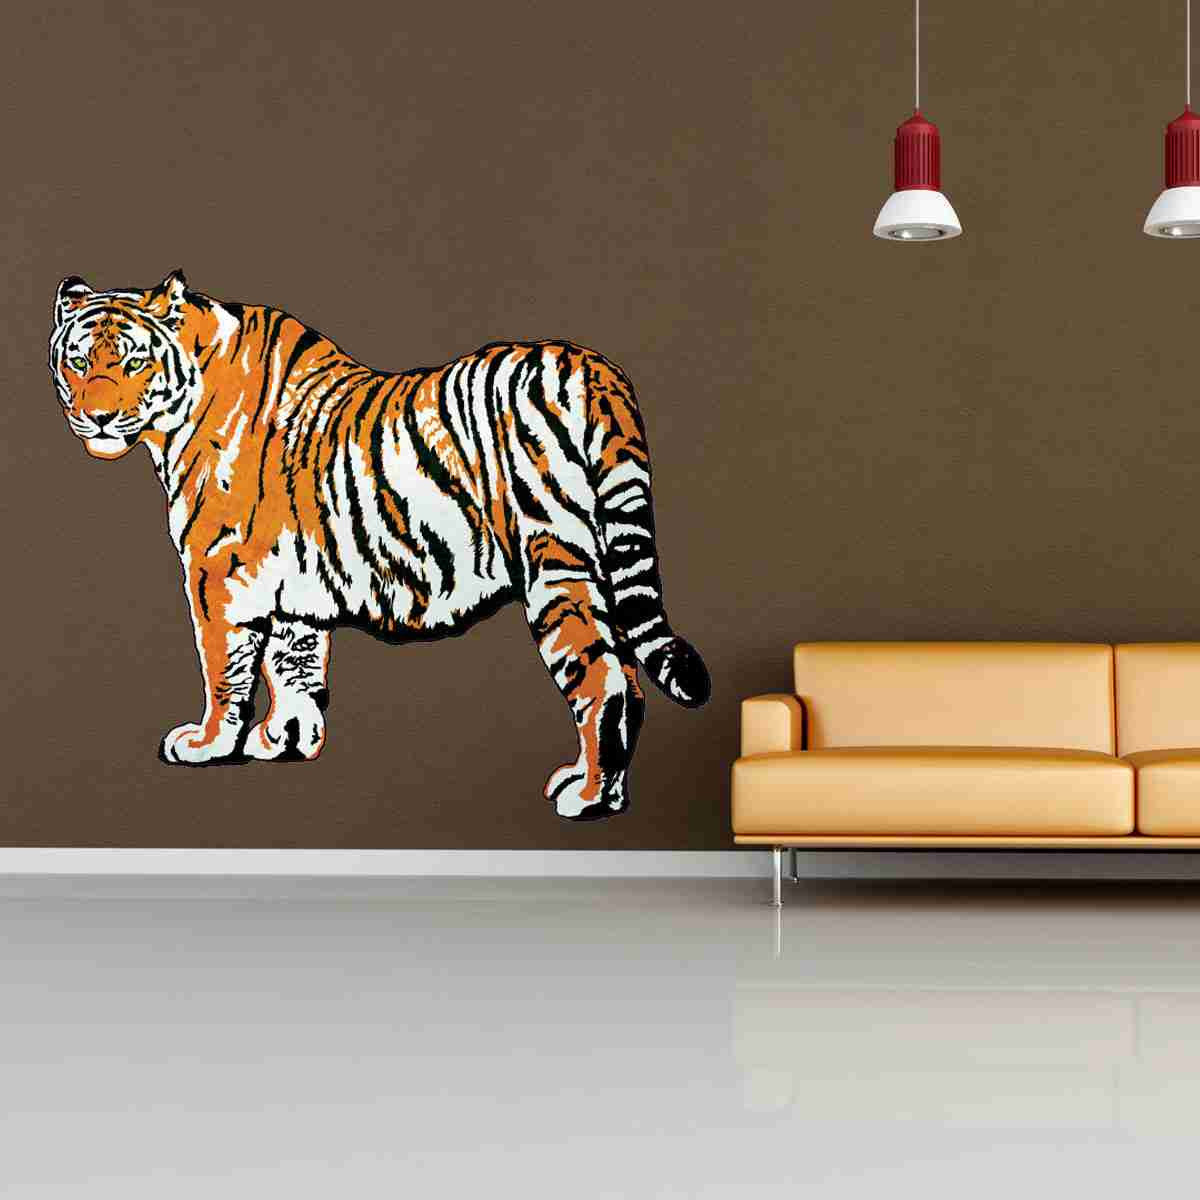 Tiger Wall Decal Sticker-Wall Decal Stickers-Style and Apply